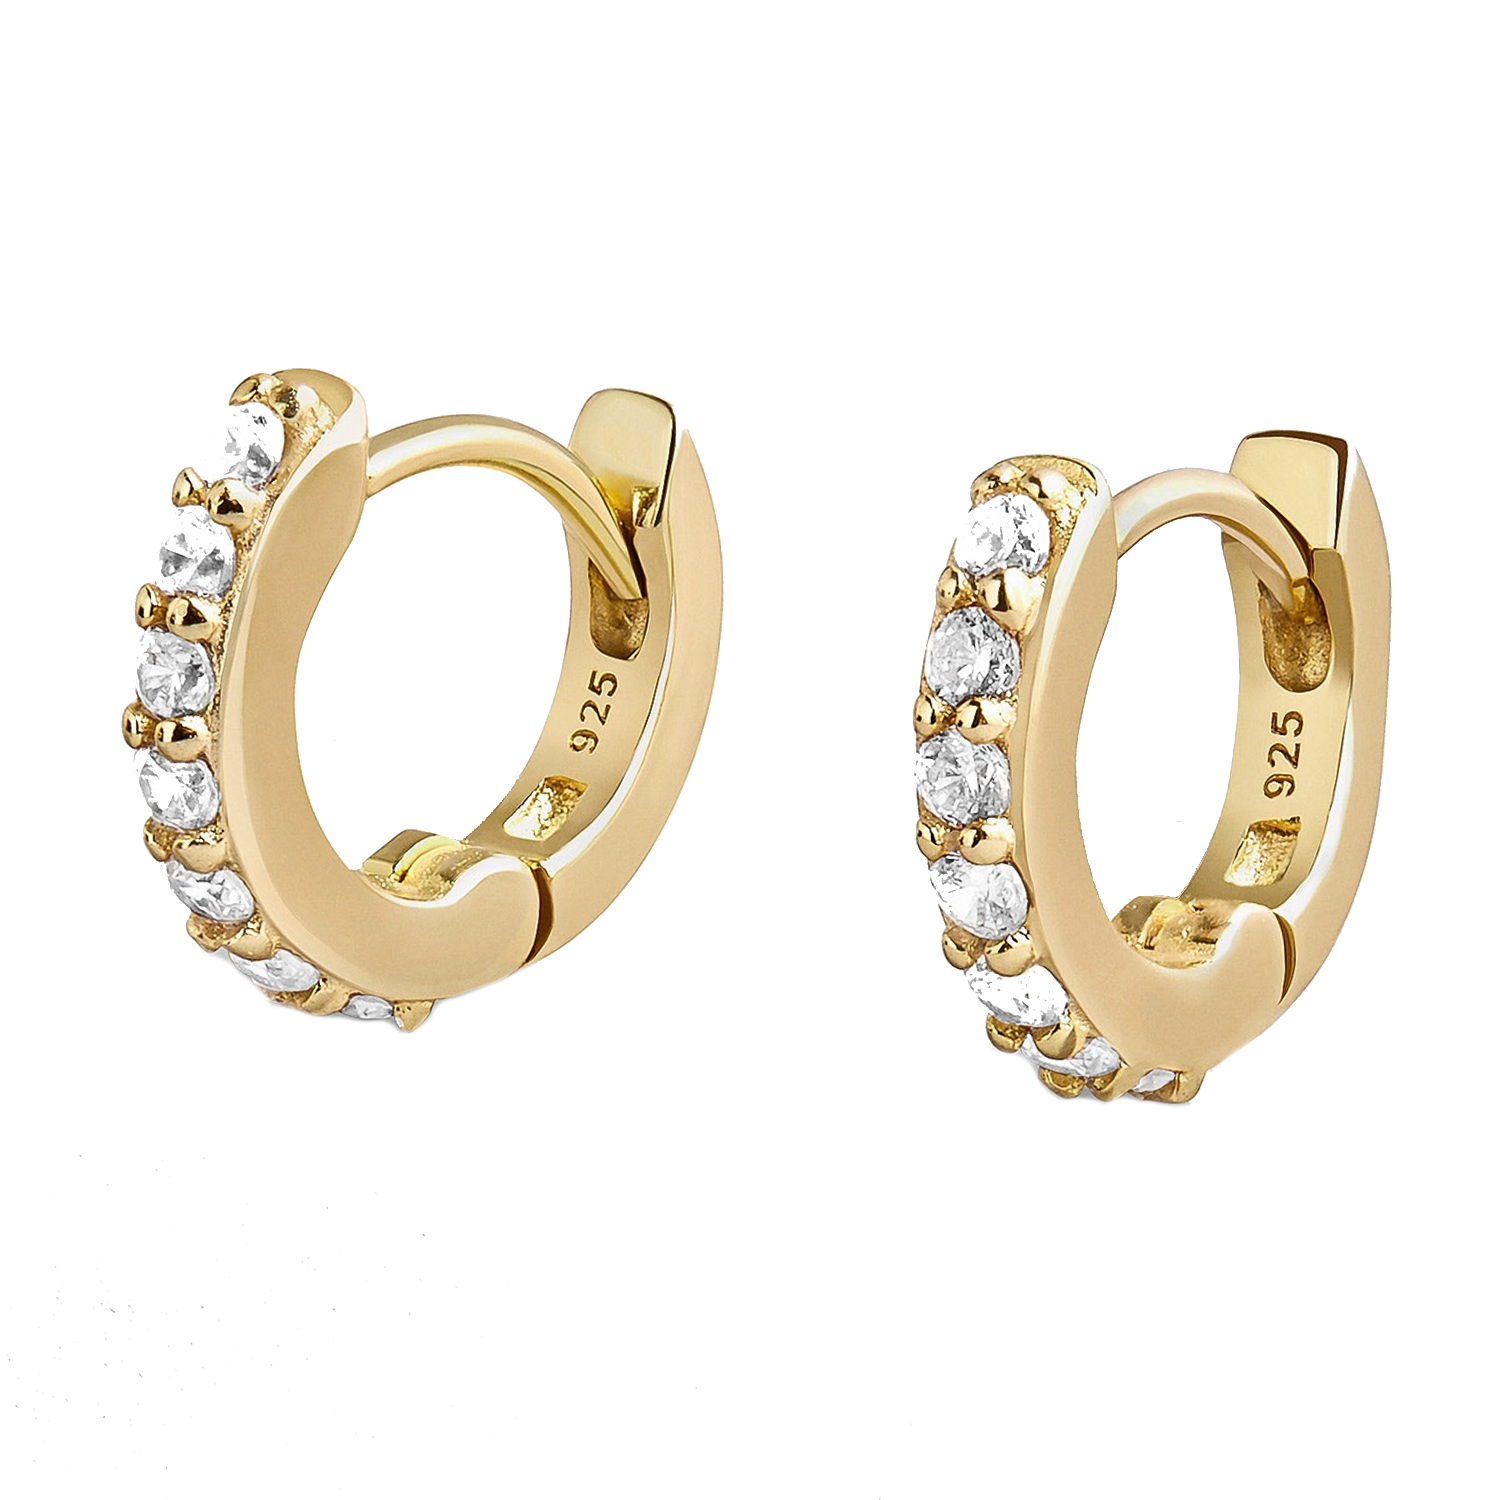 Sirena 18k Gold Vermeil Huggie Hoops Earrings